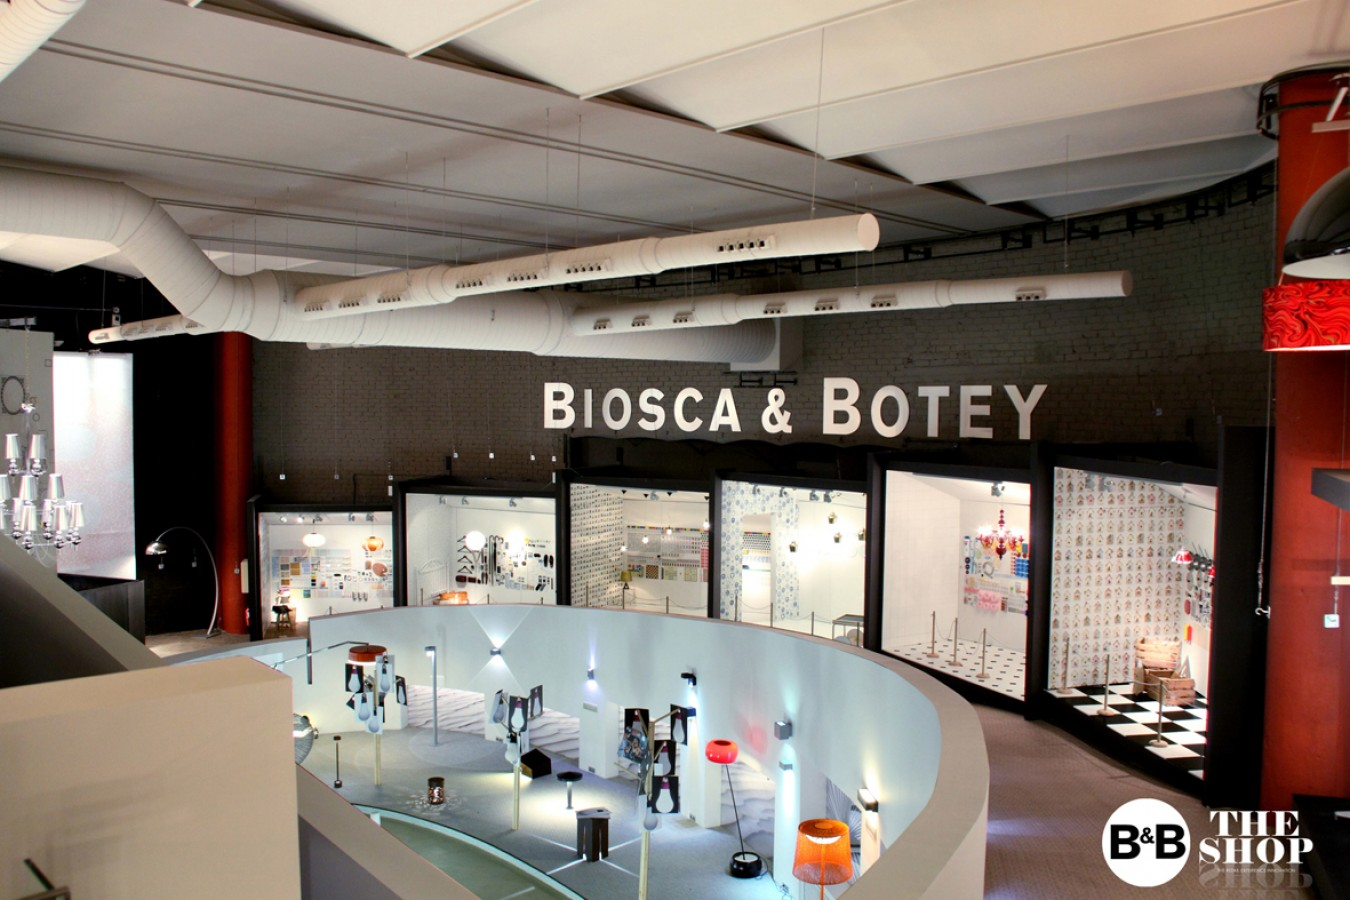 Where Can You Find The Best Lighting Stores In Barcelona Here 8 Lighting Stores In Barcelona Where Can You Find The Best Lighting Stores In Barcelona? Here! Where Can You Find The Best Lighting Stores In Barcelona Here 8